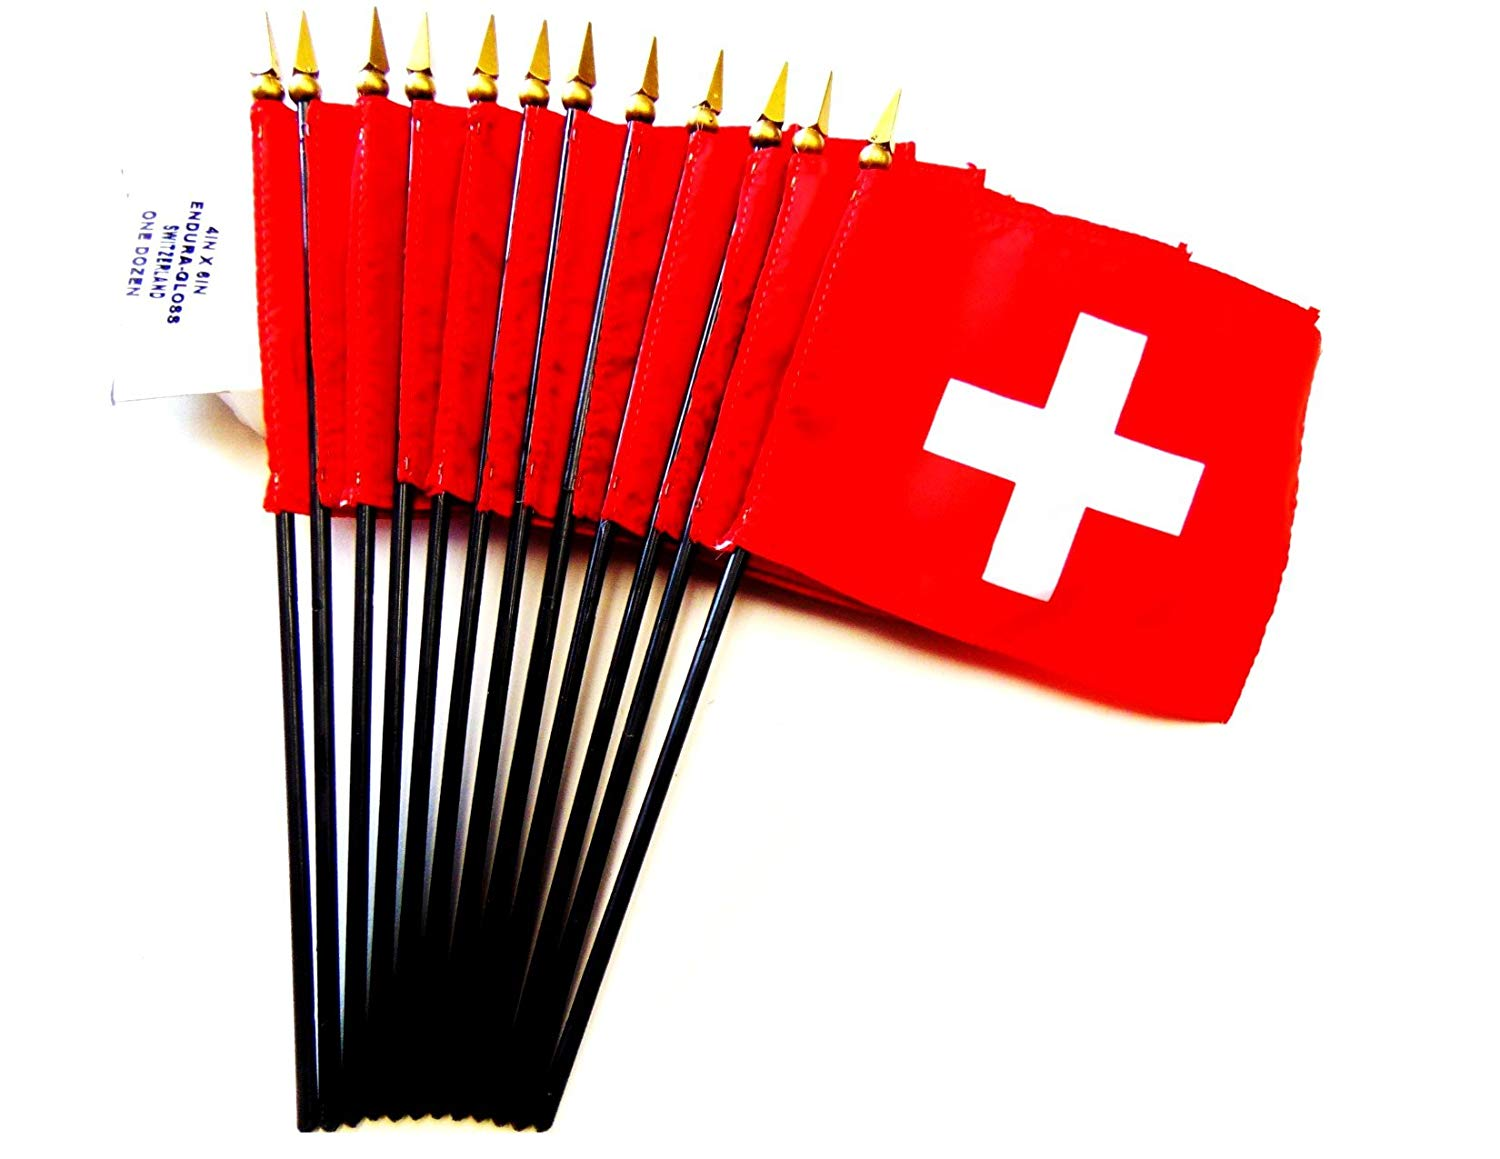 "MADE IN USA!! Box of 12 Switzerland 4""x6"" Miniature Desk & Table Flags; 12 American Made Small Mini Swiss Flags in a Custom Made Cardboard Box Specifically Made for These Flags"